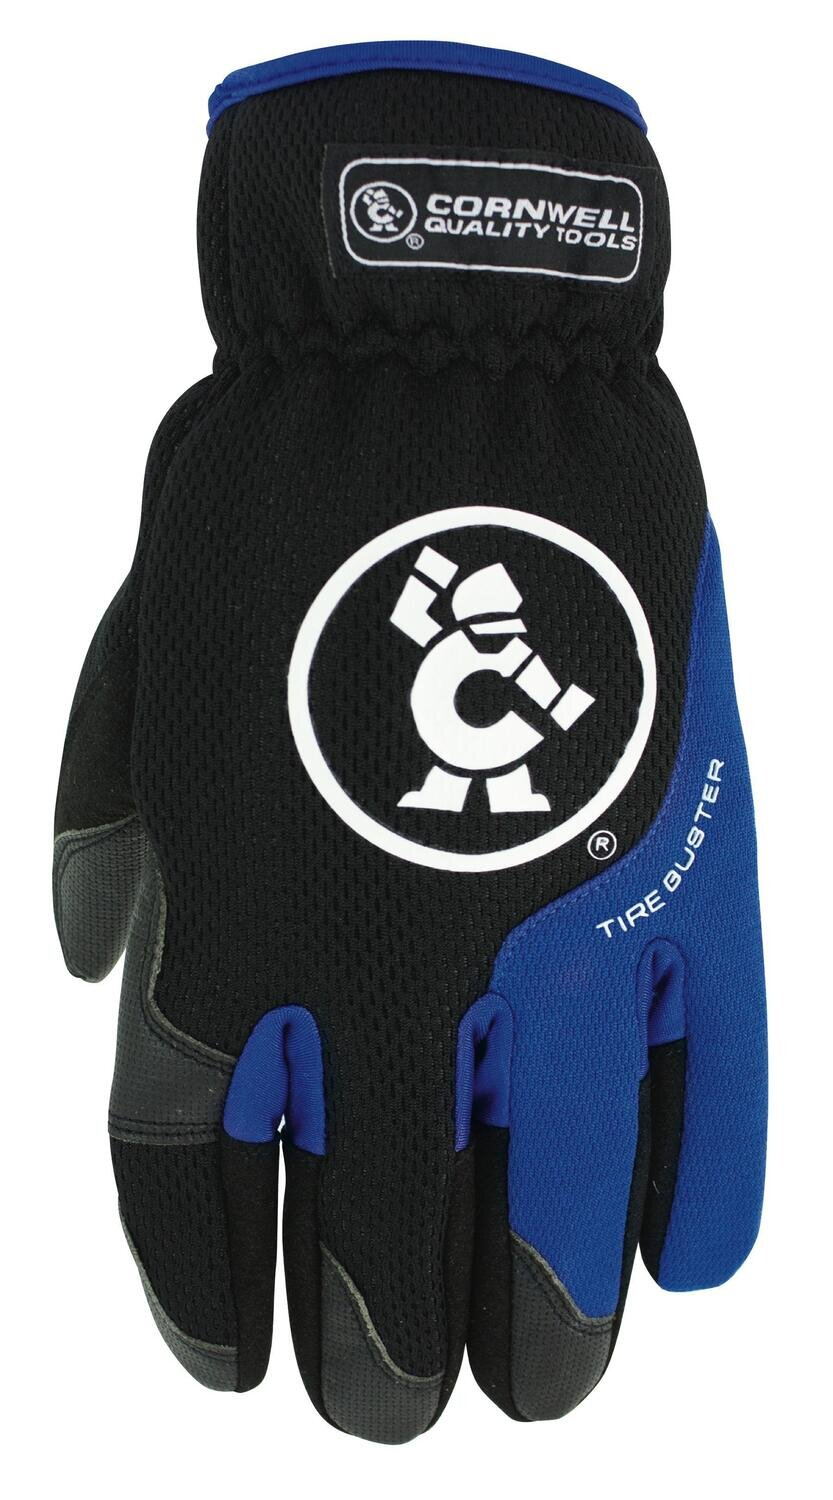 ASCCTBM - Tire Buster Gloves